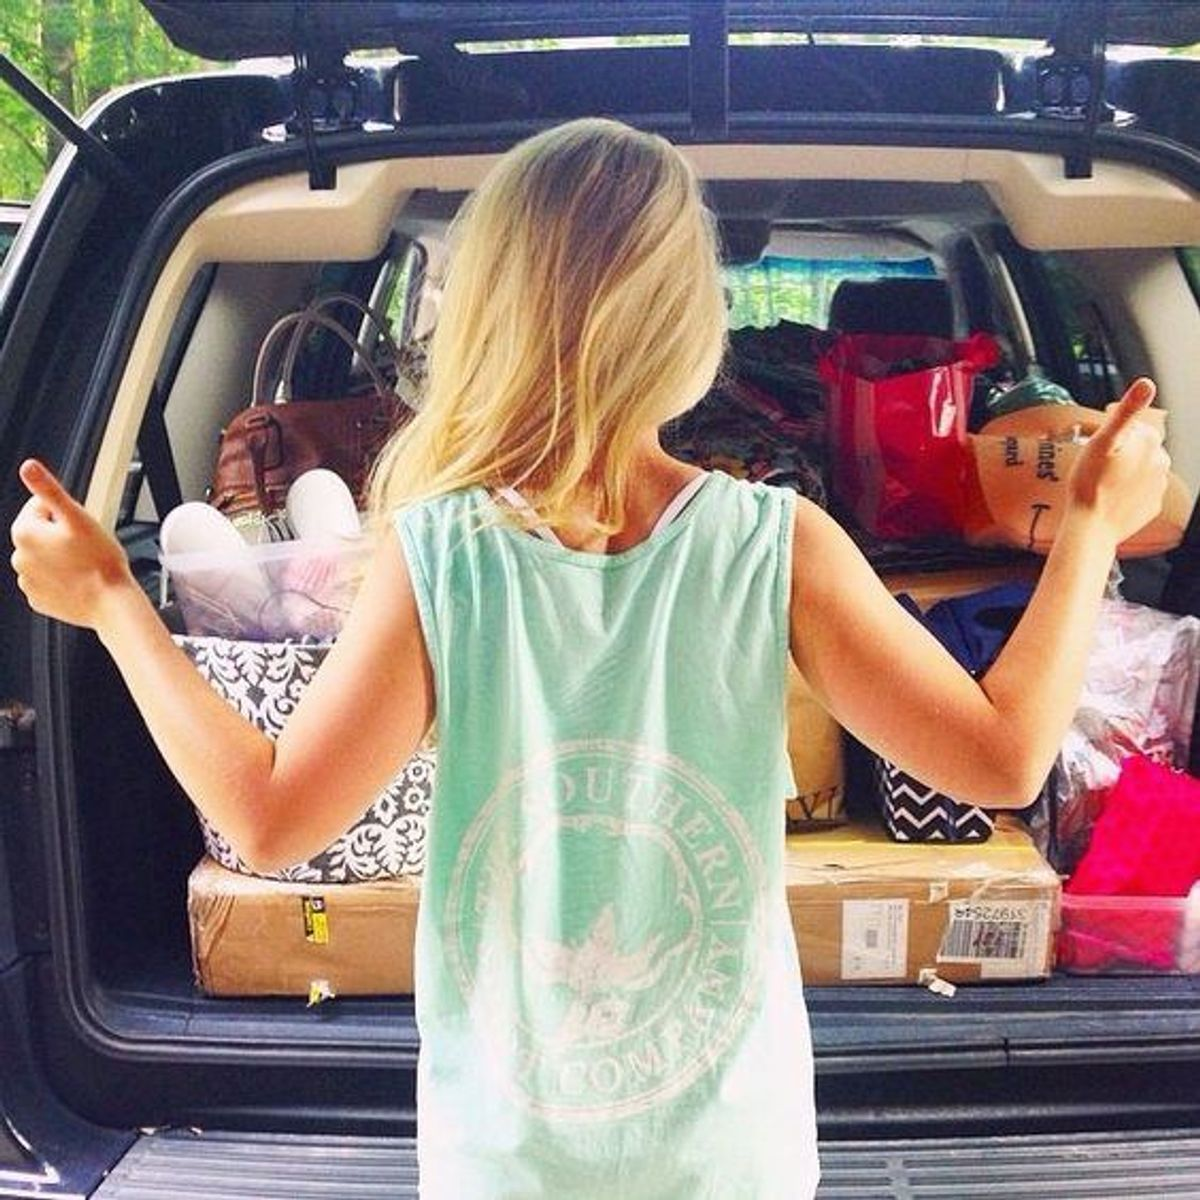 11 Reasons Why You Should Move Away For College